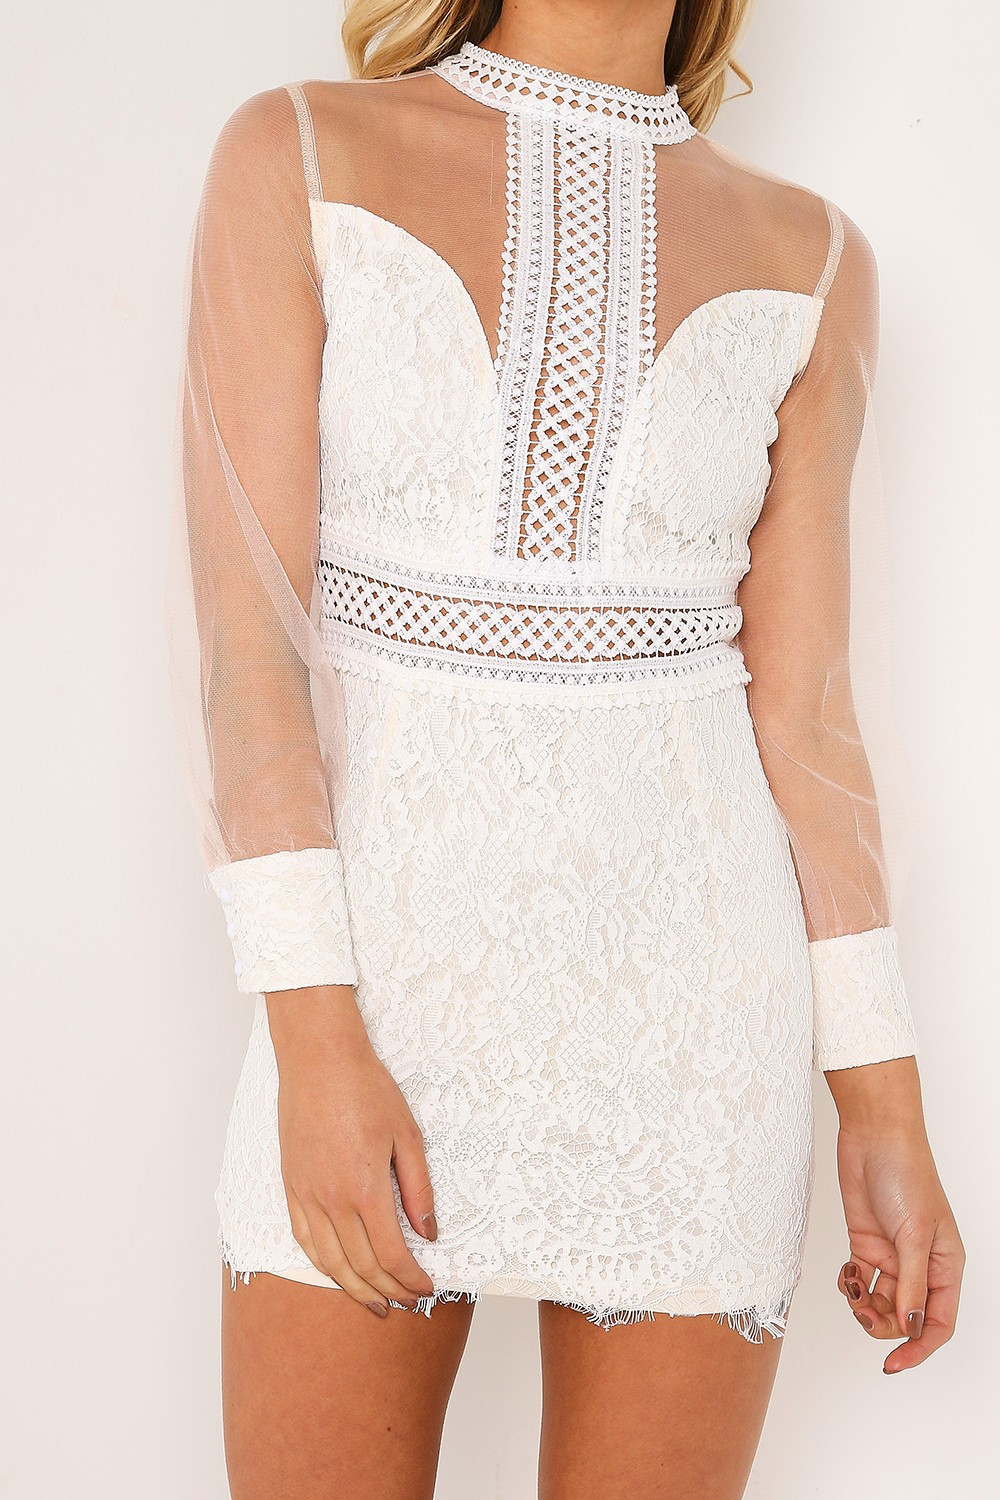 White Lace Crochet Dress Best Of White Crochet Lace Mini Dress Of Awesome 48 Photos White Lace Crochet Dress